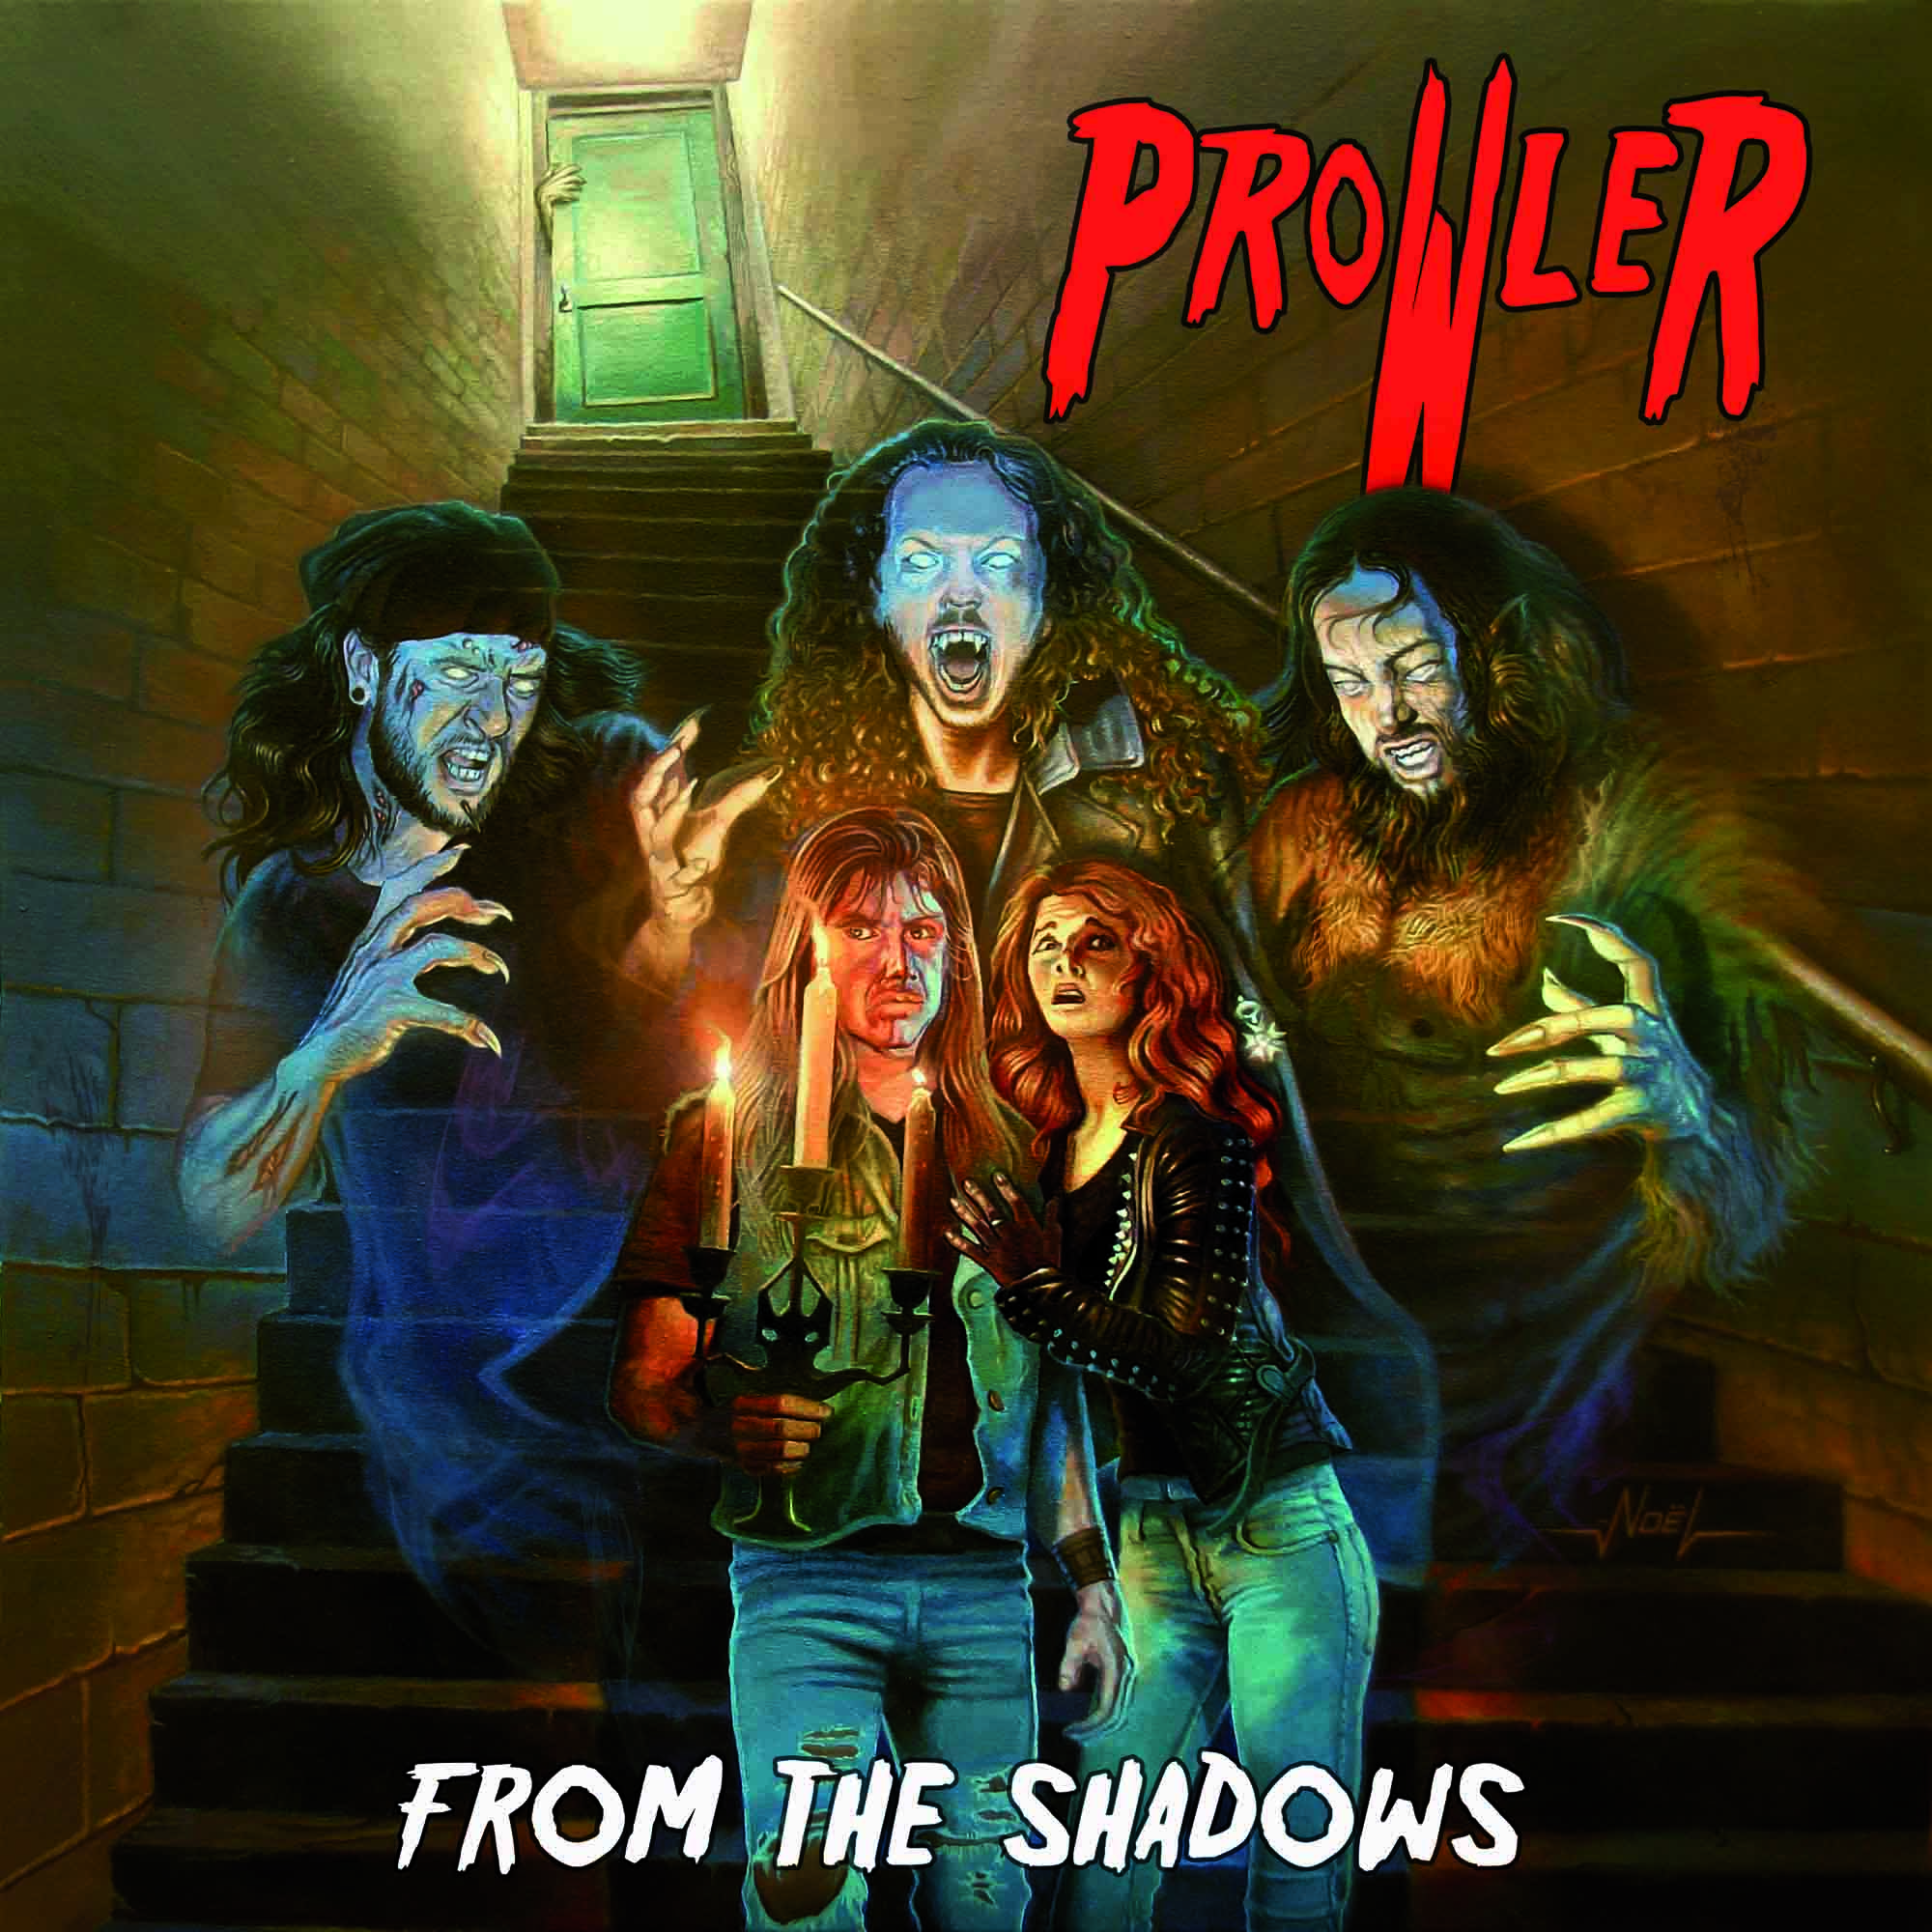 Prowler – From the Shadows Review